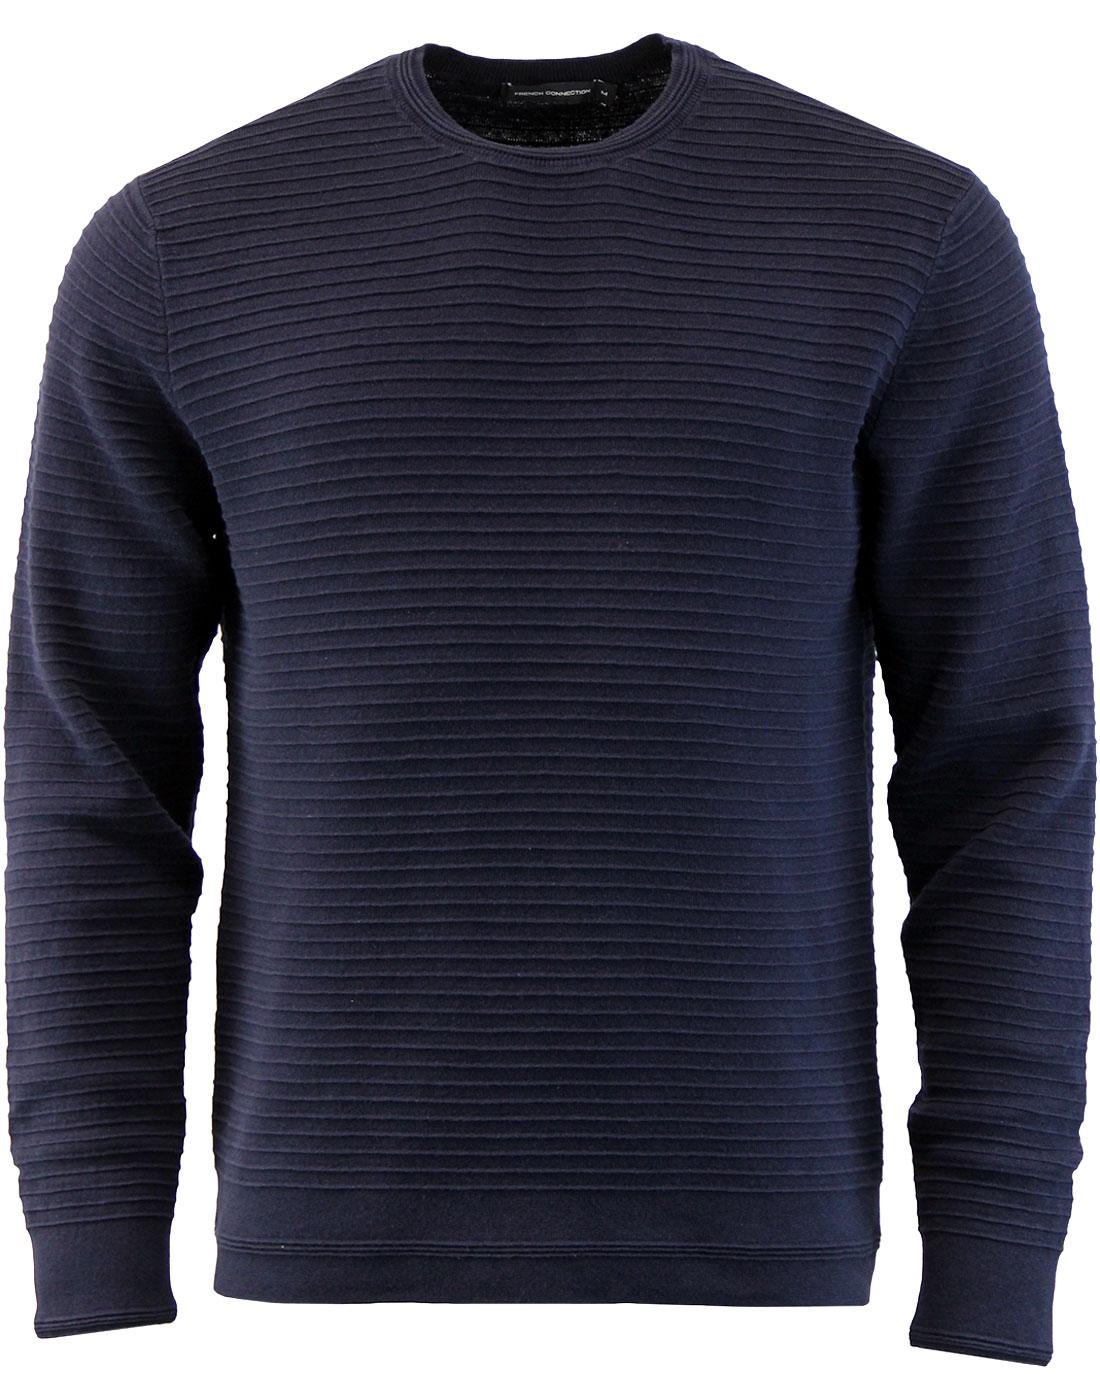 FRENCH CONNECTION Textured Crew Neck Jumper